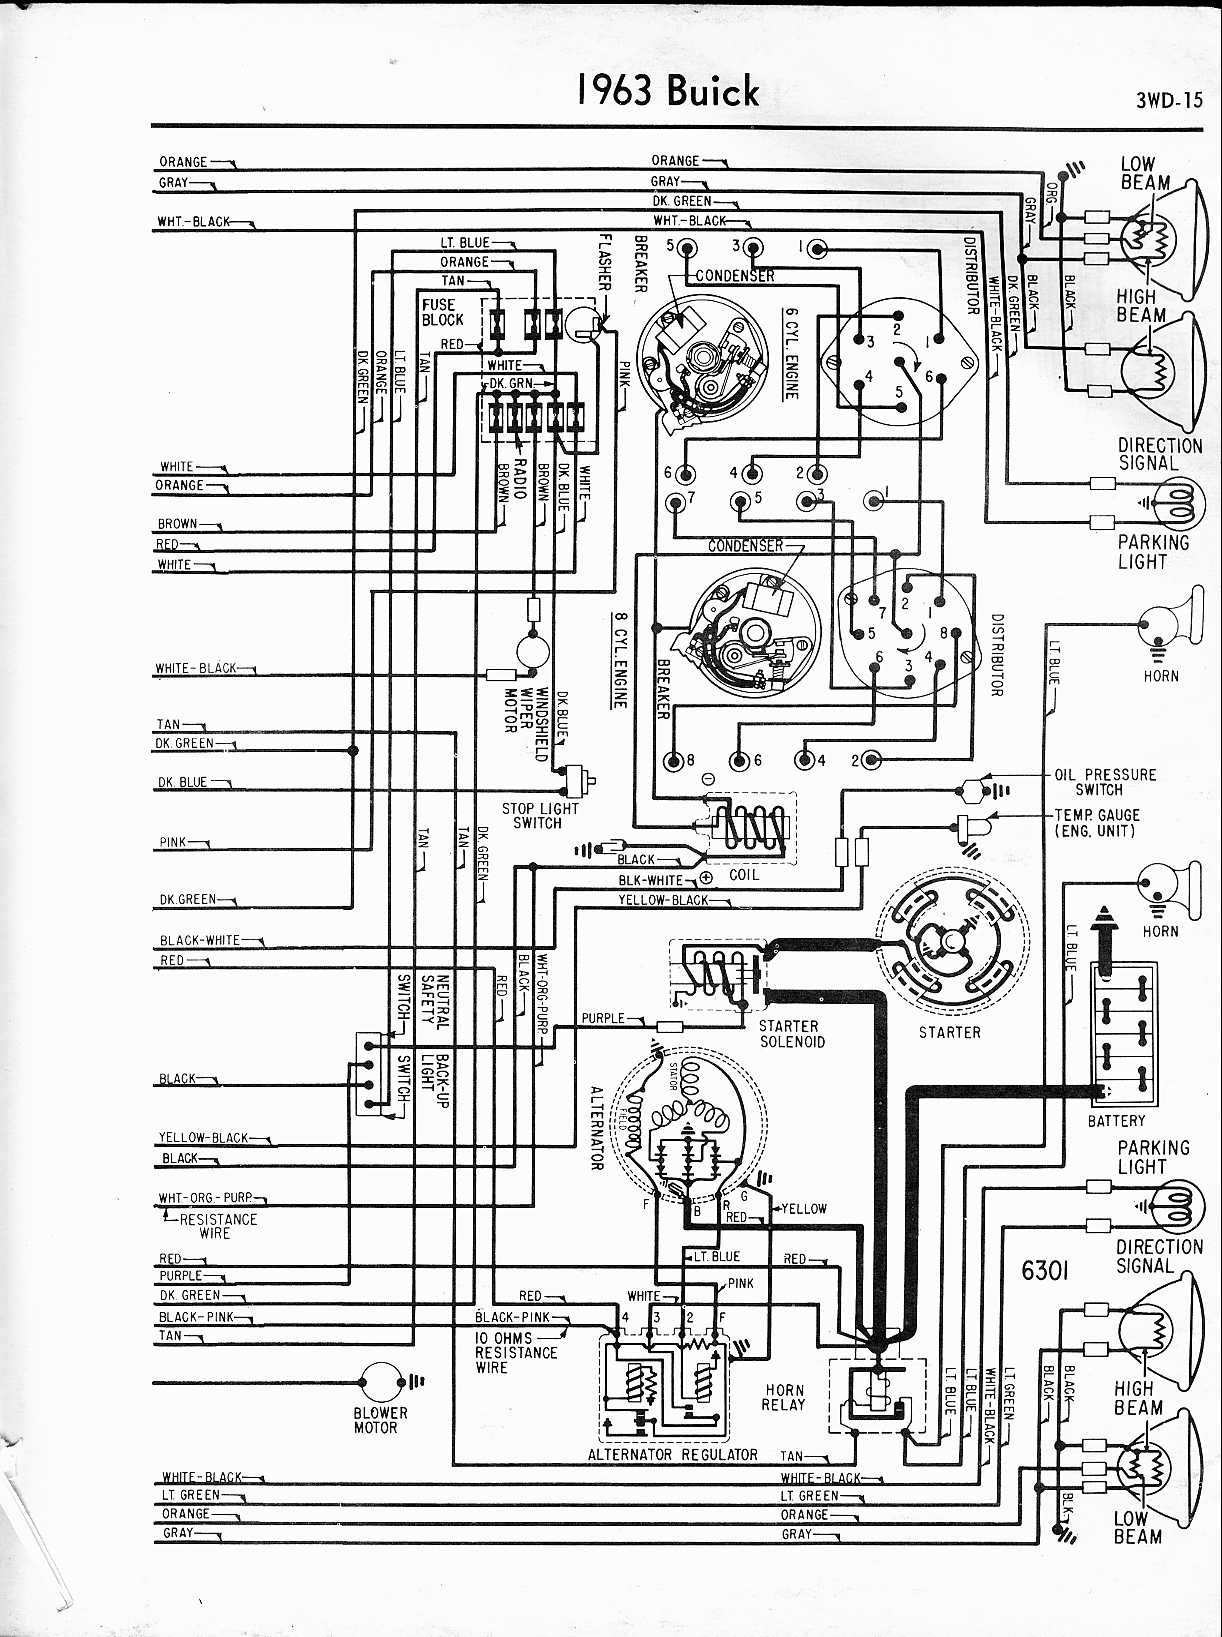 MWireBuic65_3WD 015 buick wiring diagrams 1957 1965 Tachometer Wiring Schematic at panicattacktreatment.co